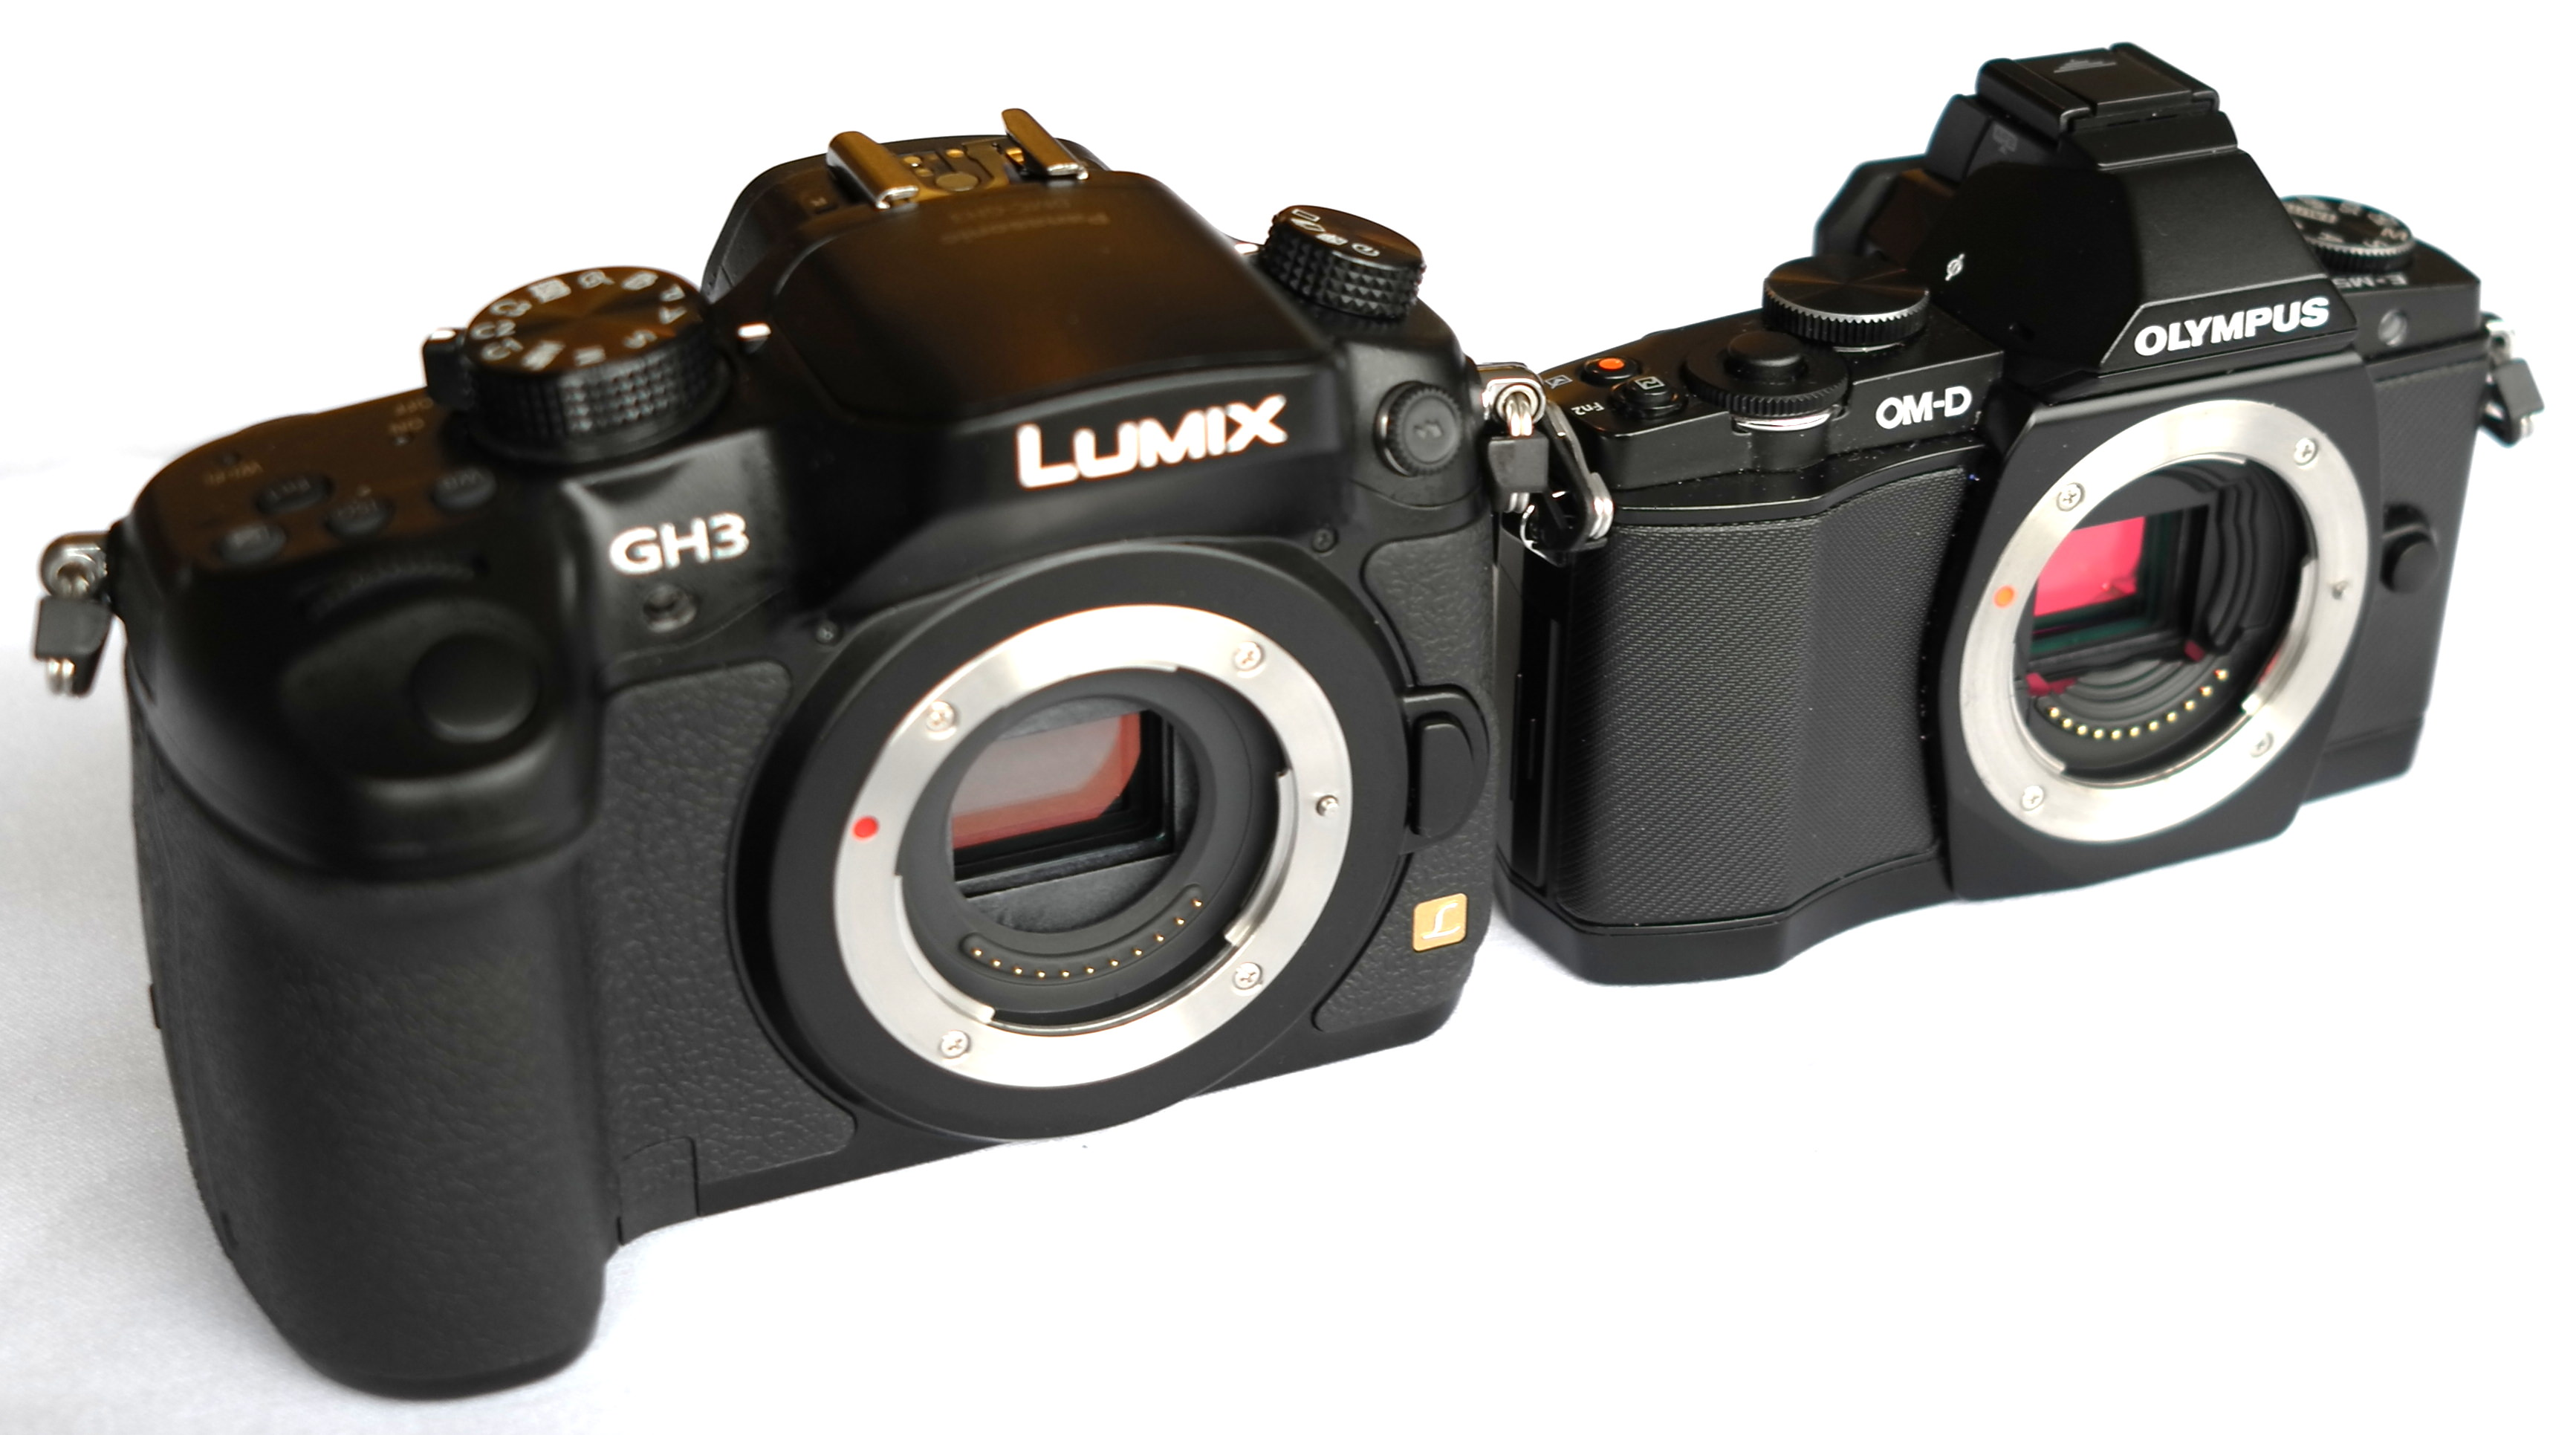 Panasonic Lumix GH3 review | Cameralabs